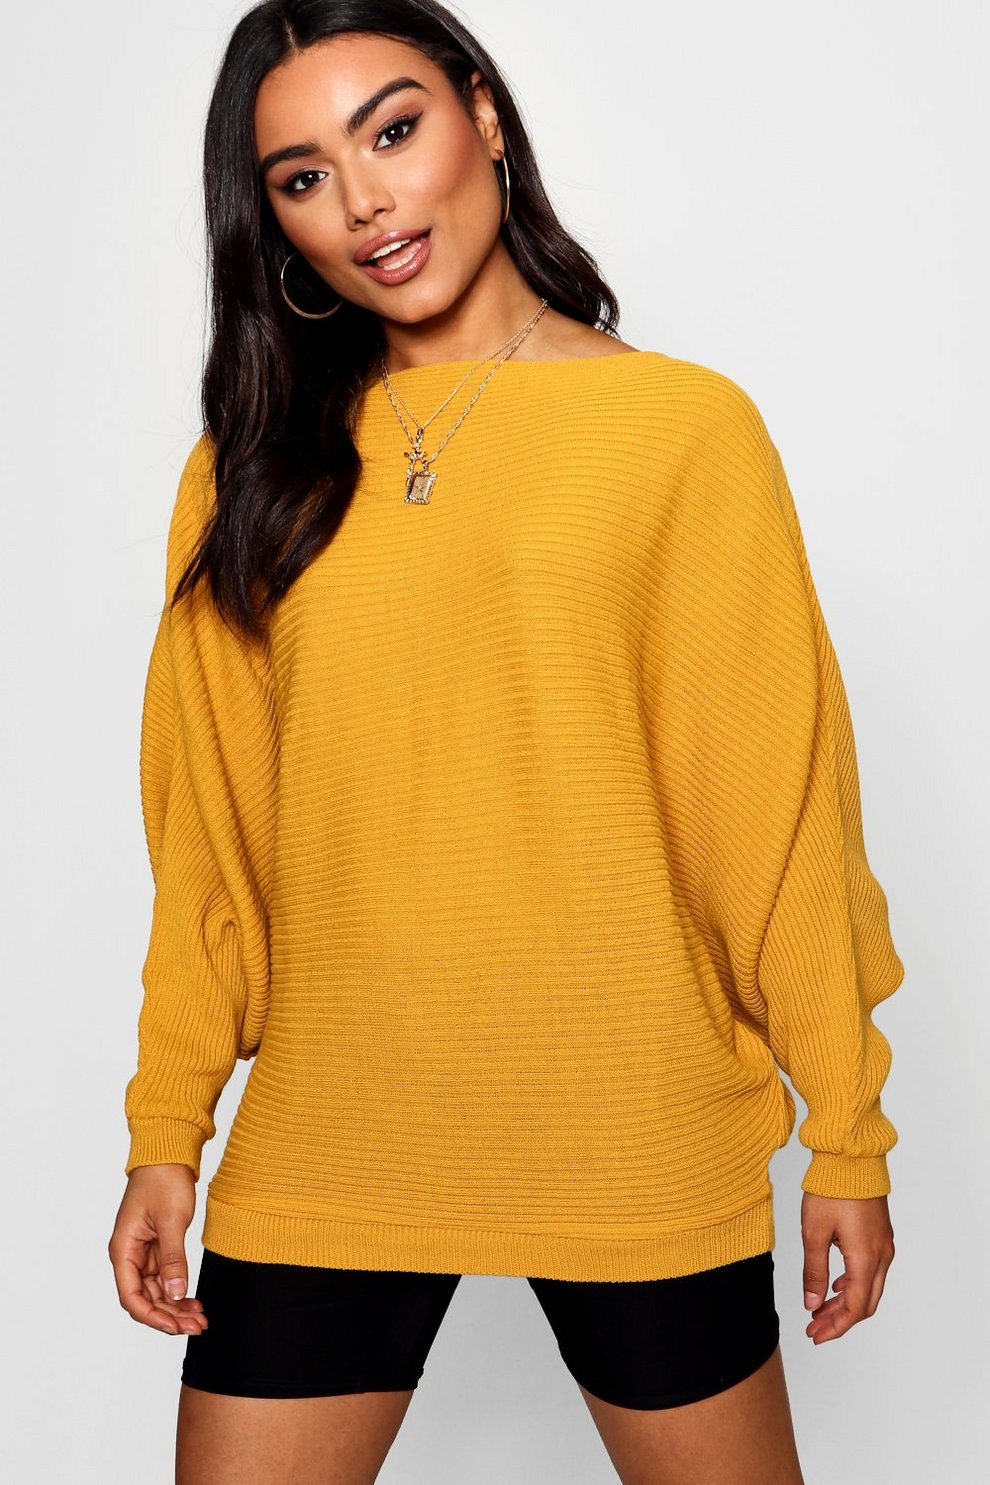 8b25c04b8268 Womens Mustard Oversized Rib Knit Batwing Sweater